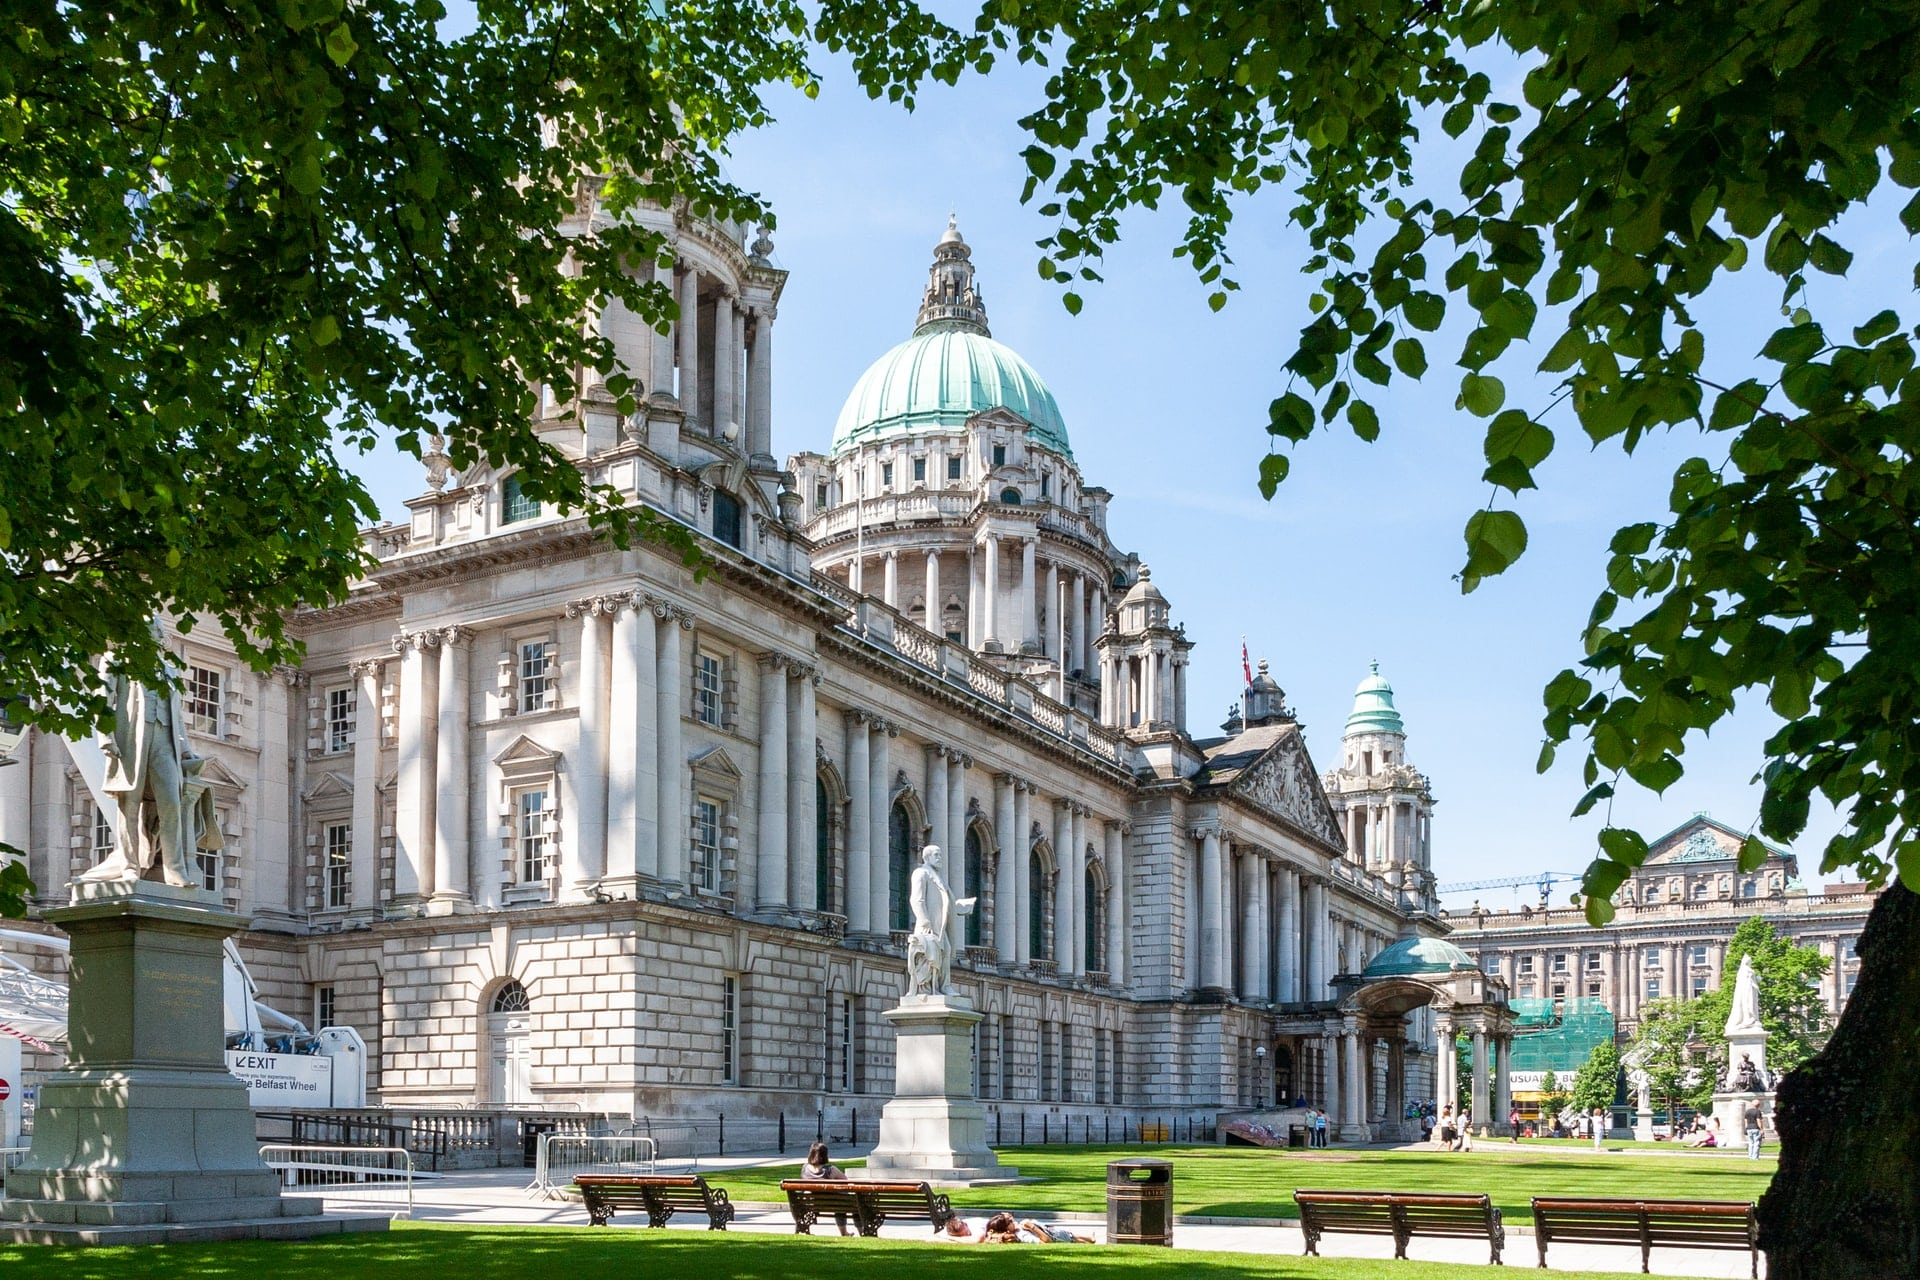 old-historic-huge-belfast-city-hall-on-a-summers-day-through-treesbest-uk-city-breaks-for-couples